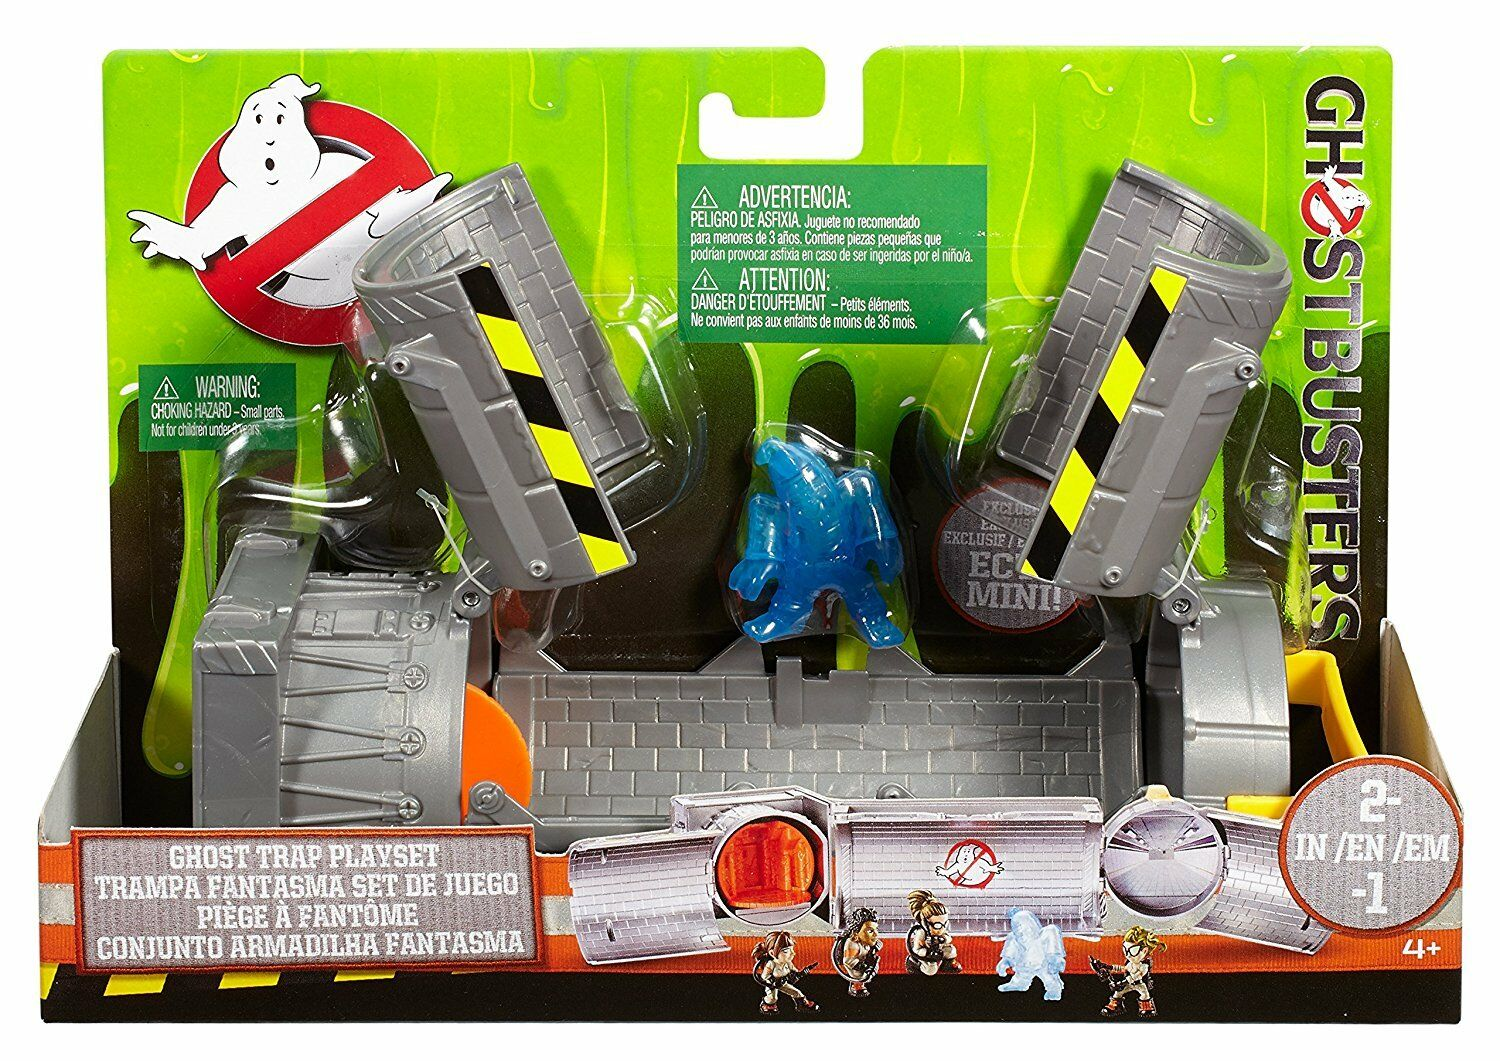 GHOSTBUSTERS GHOST TRAP ECTO MINI PLAYSET 2 in 1 SUBWAY SCENE MOSC MATTEL 2016